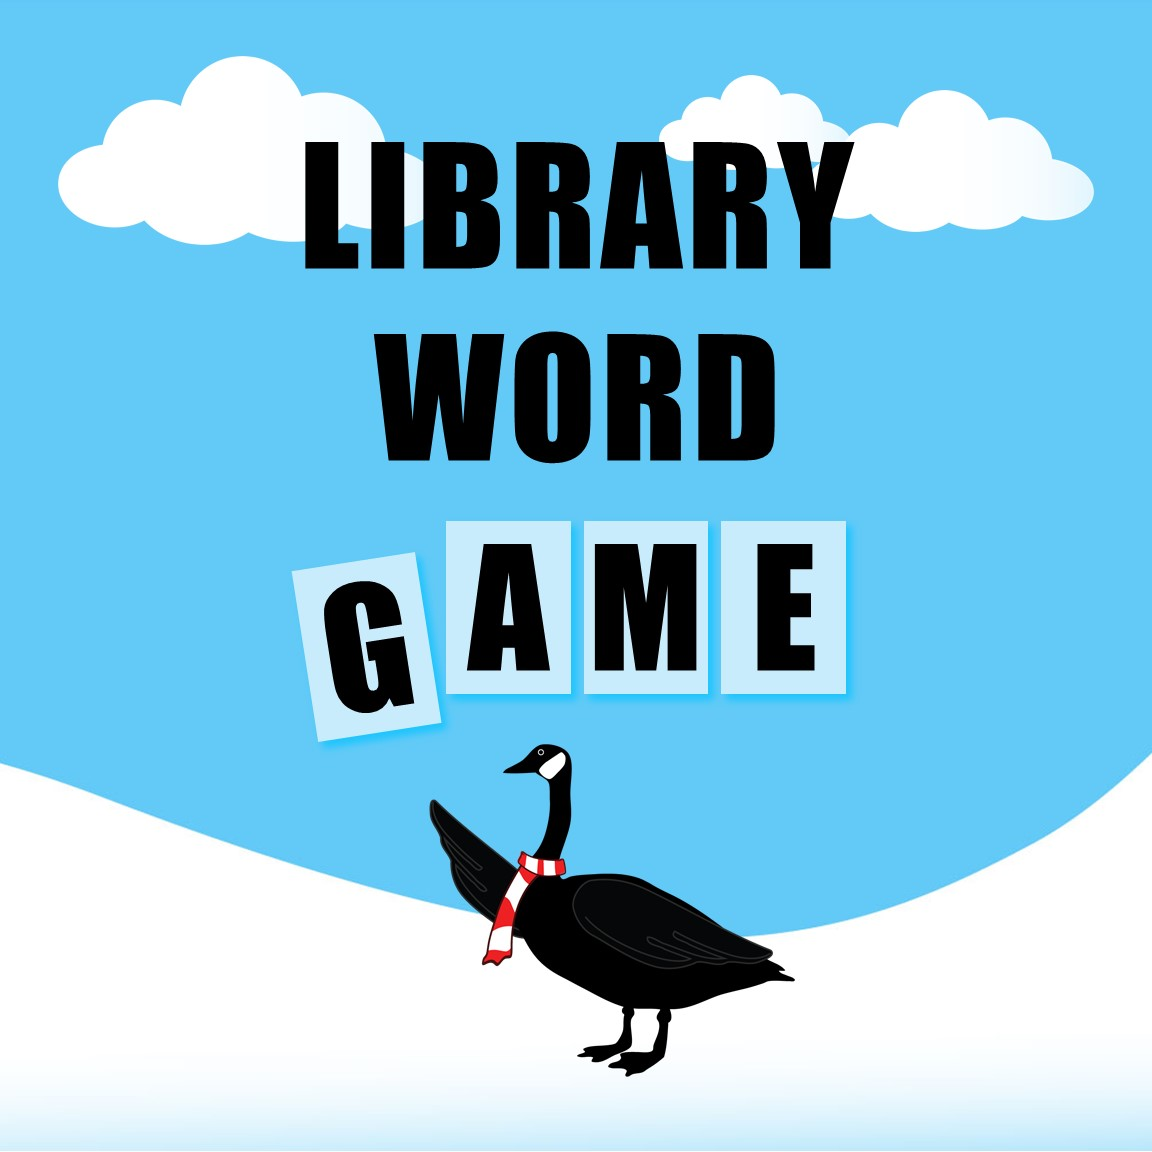 Library word game